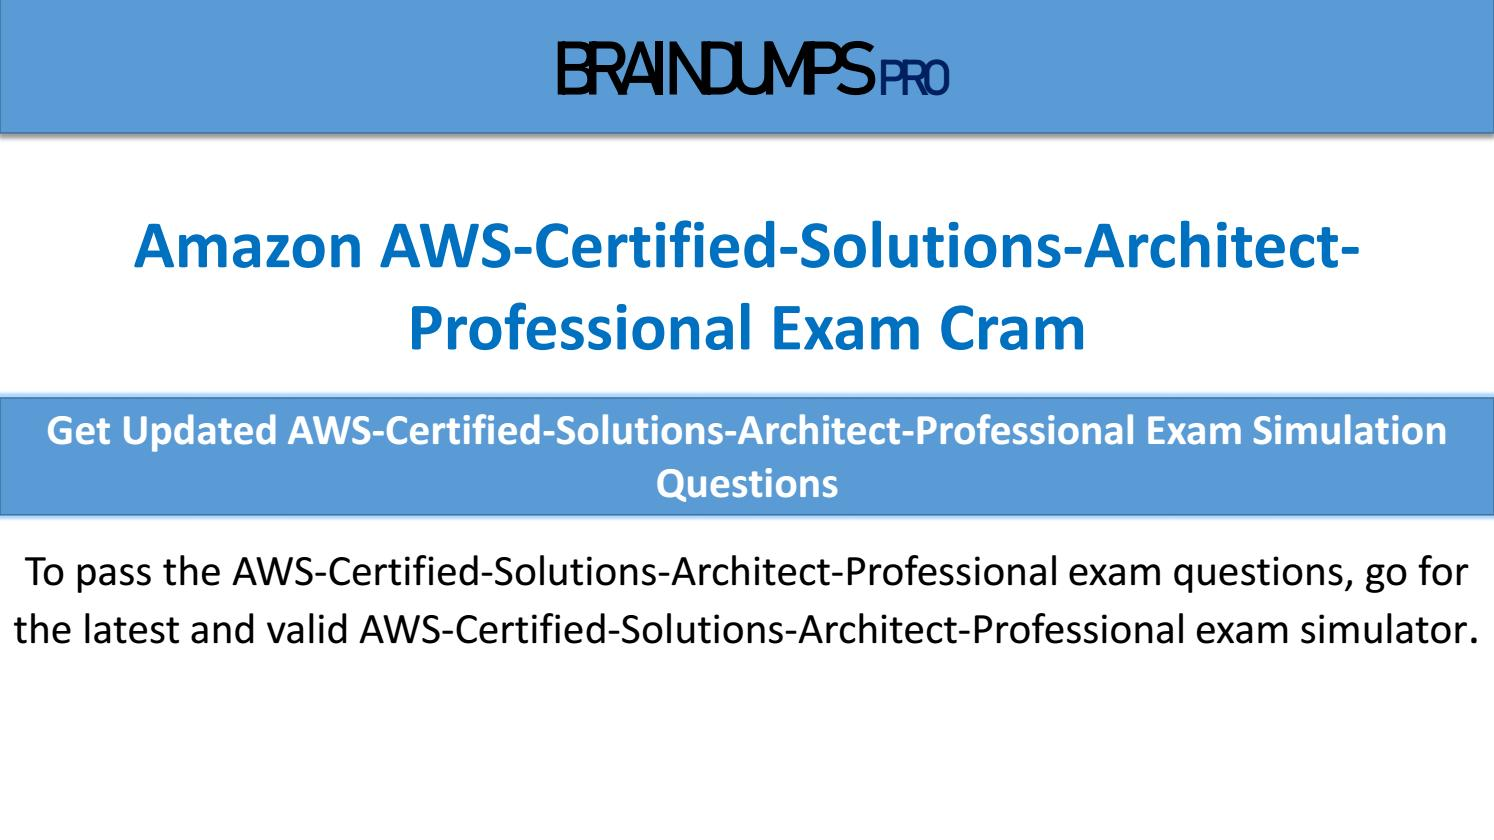 AWS Certified Solutions Architect Professional Exam questions pdf and simulator